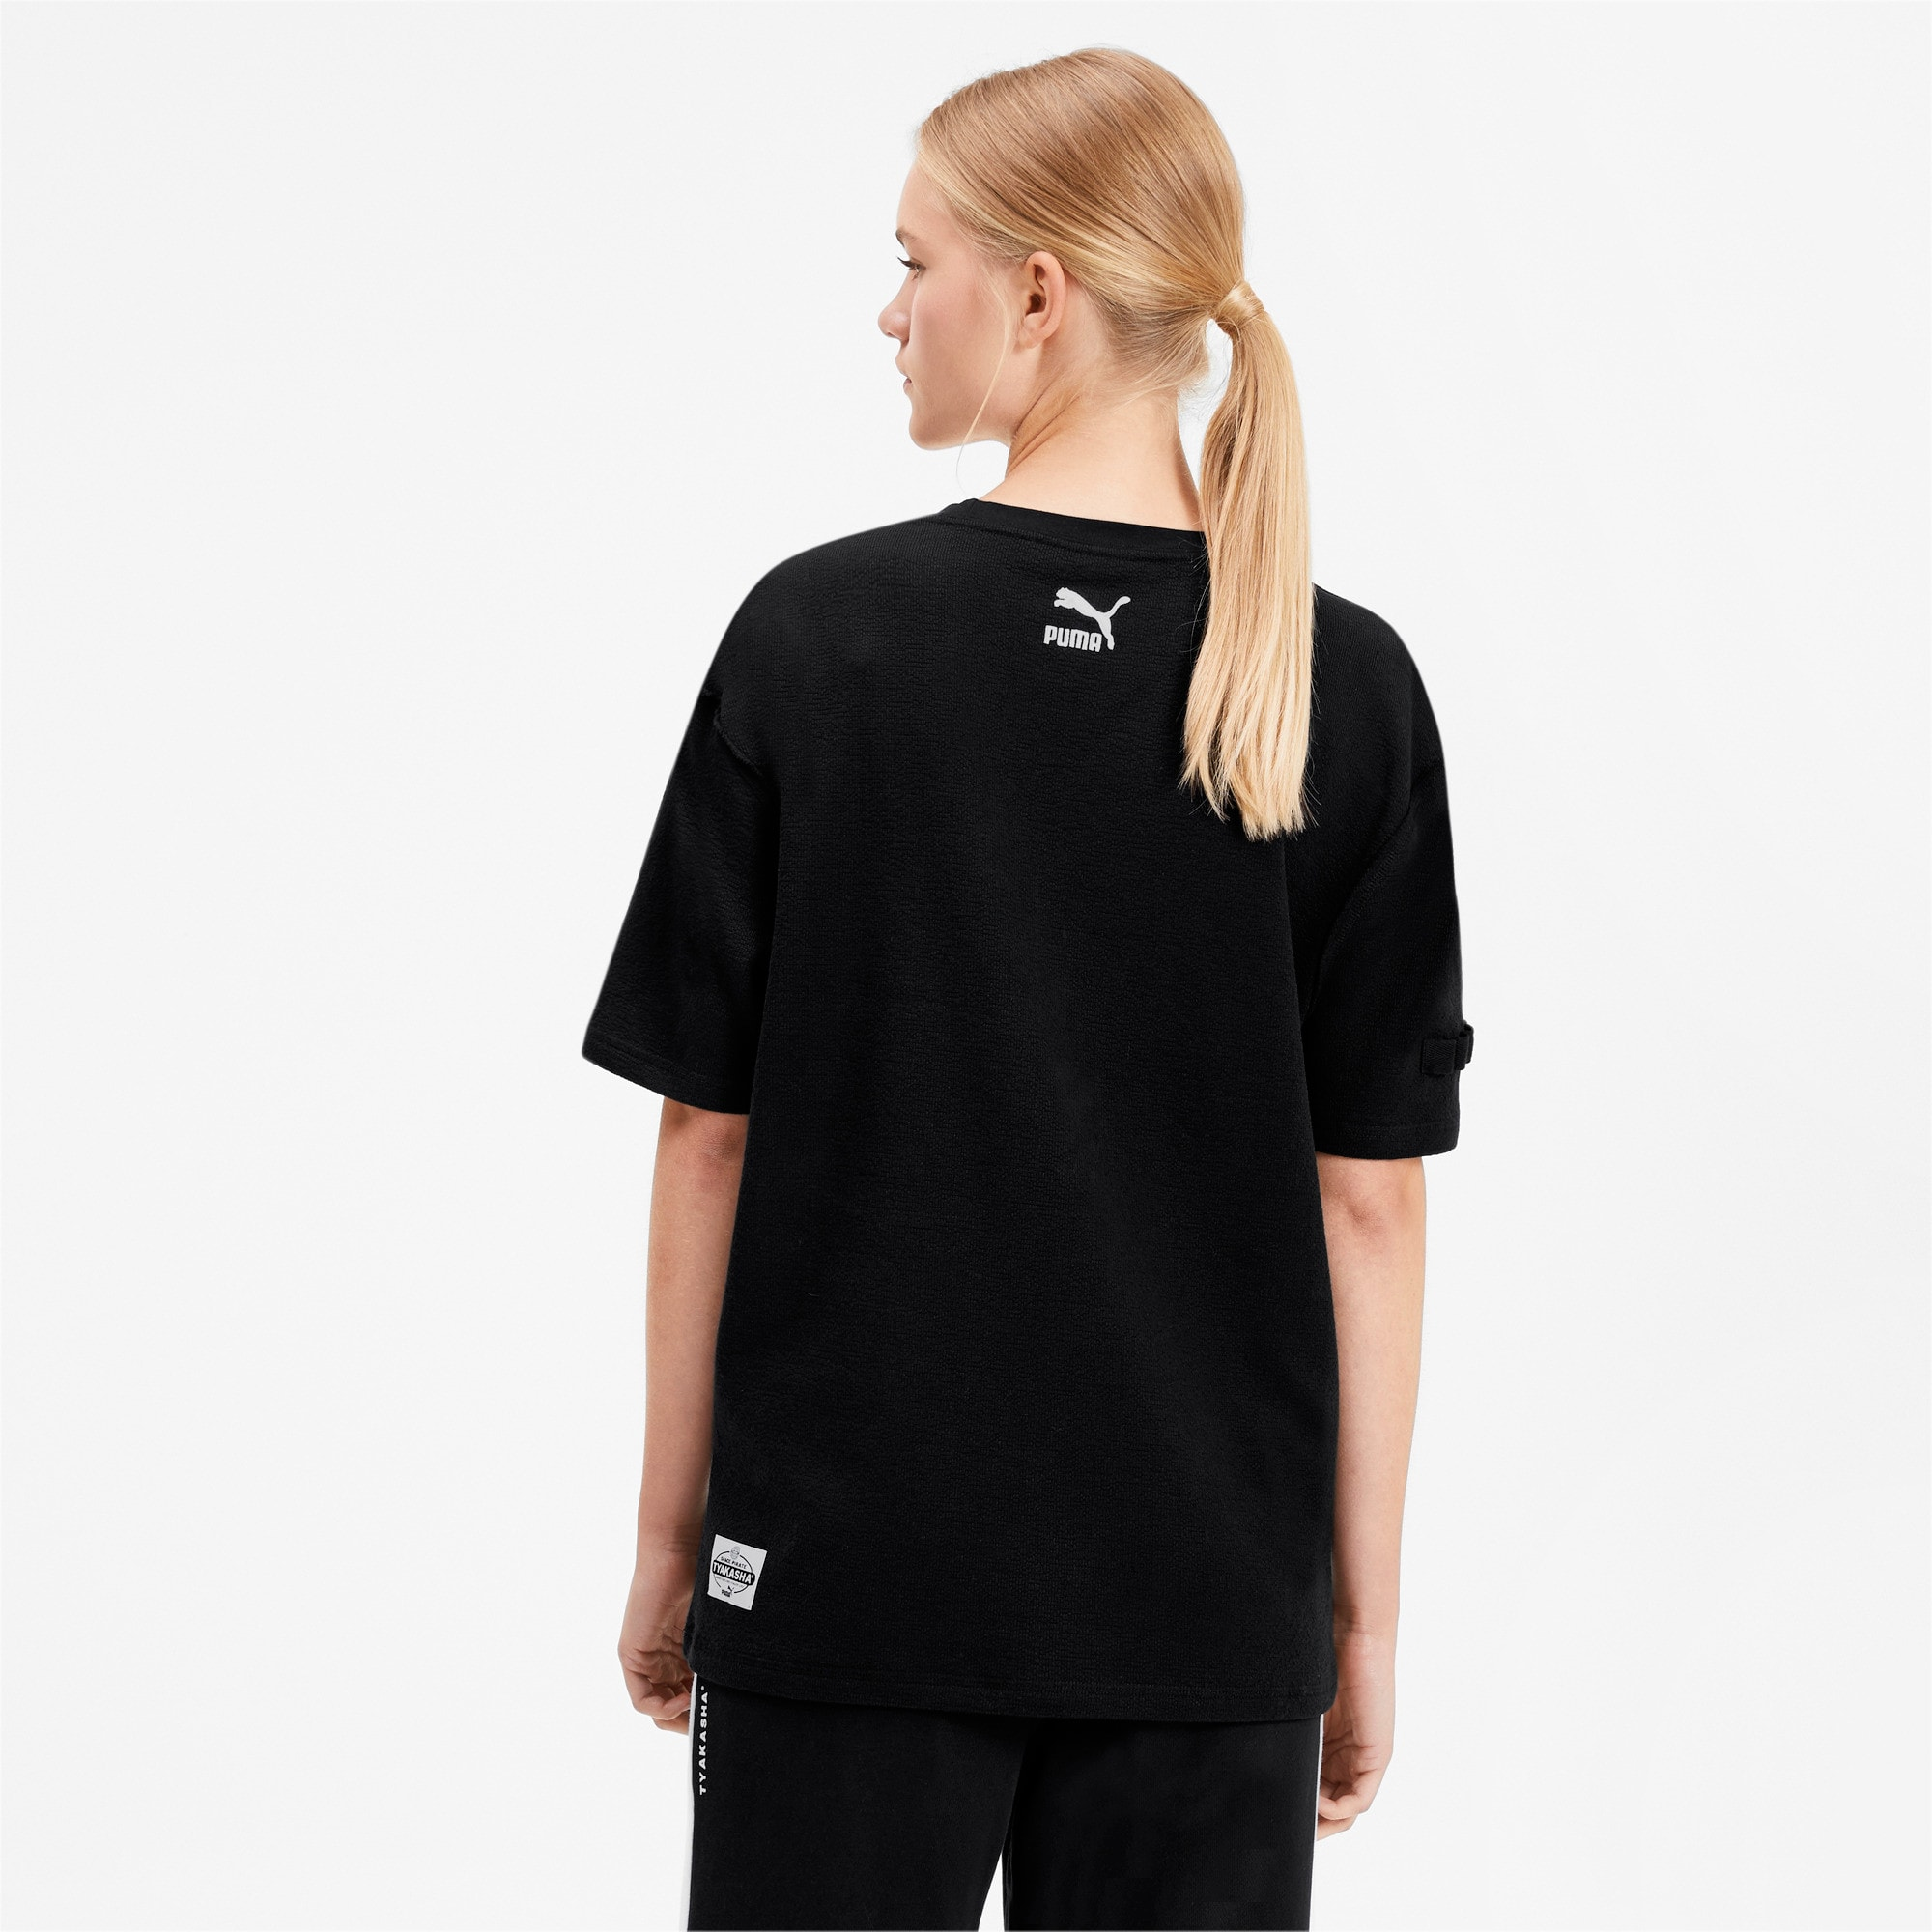 Thumbnail 3 of PUMA x TYAKASHA Tee, Cotton Black, medium